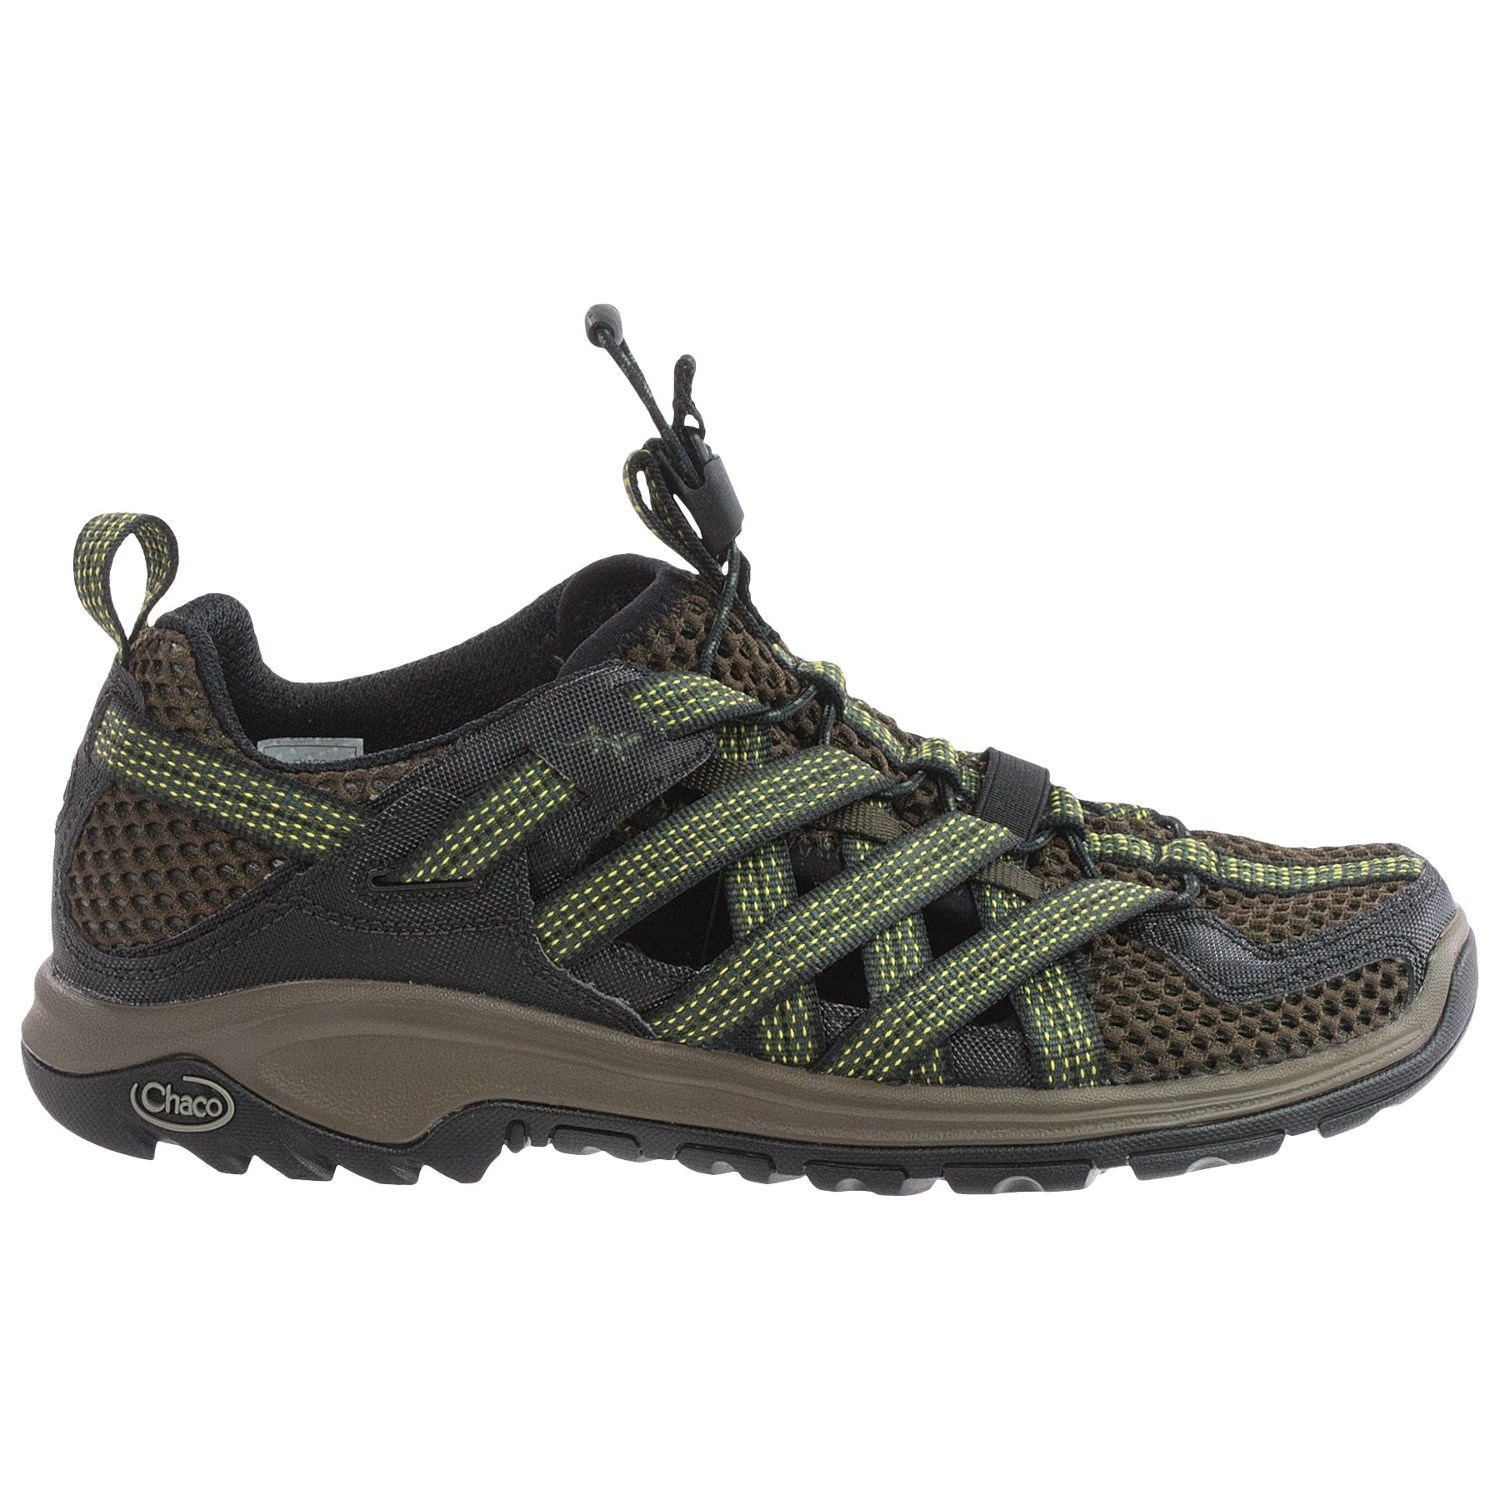 chaco shoes chaco outcross evo 1 water shoes (for men) brupddw